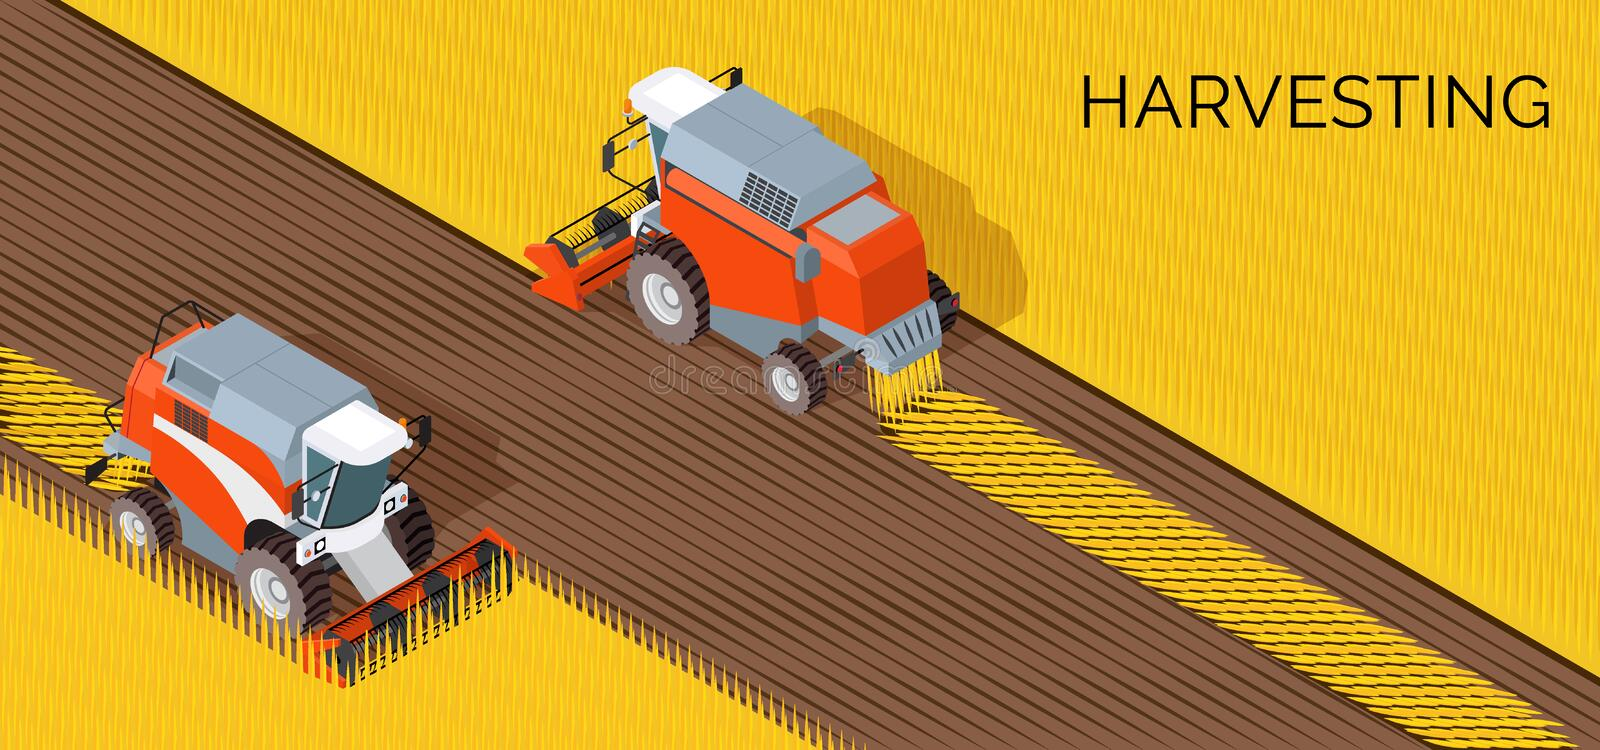 Harvesting concept, combine, agriculture machine on field with grain crop stock illustration